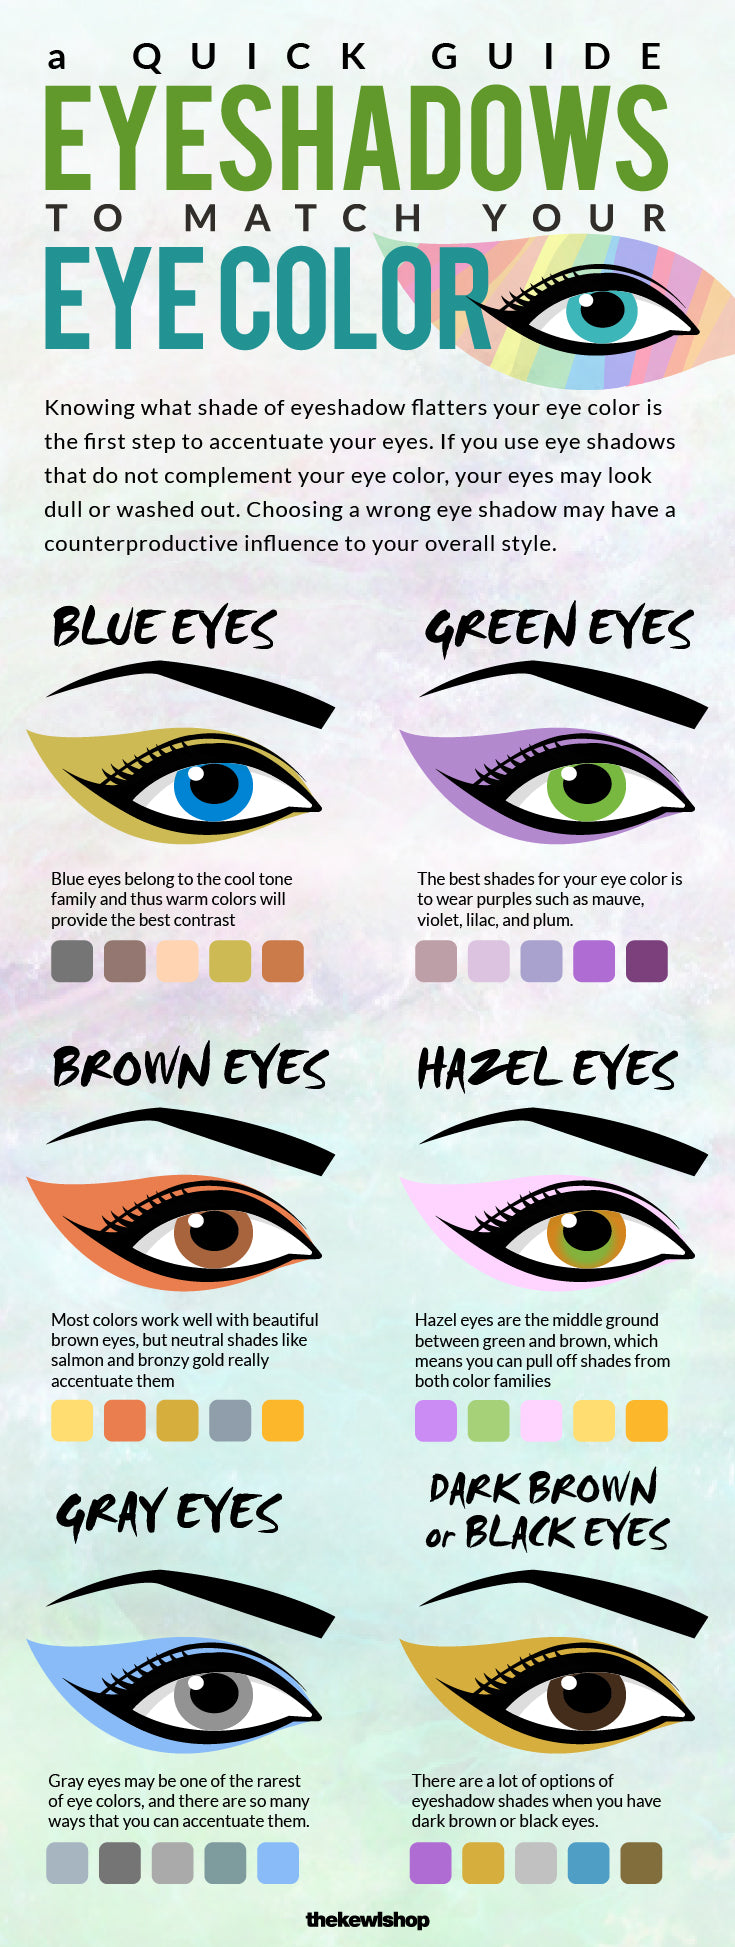 Best Eyeshadows To Match Your Eye Color The Kewl Shop